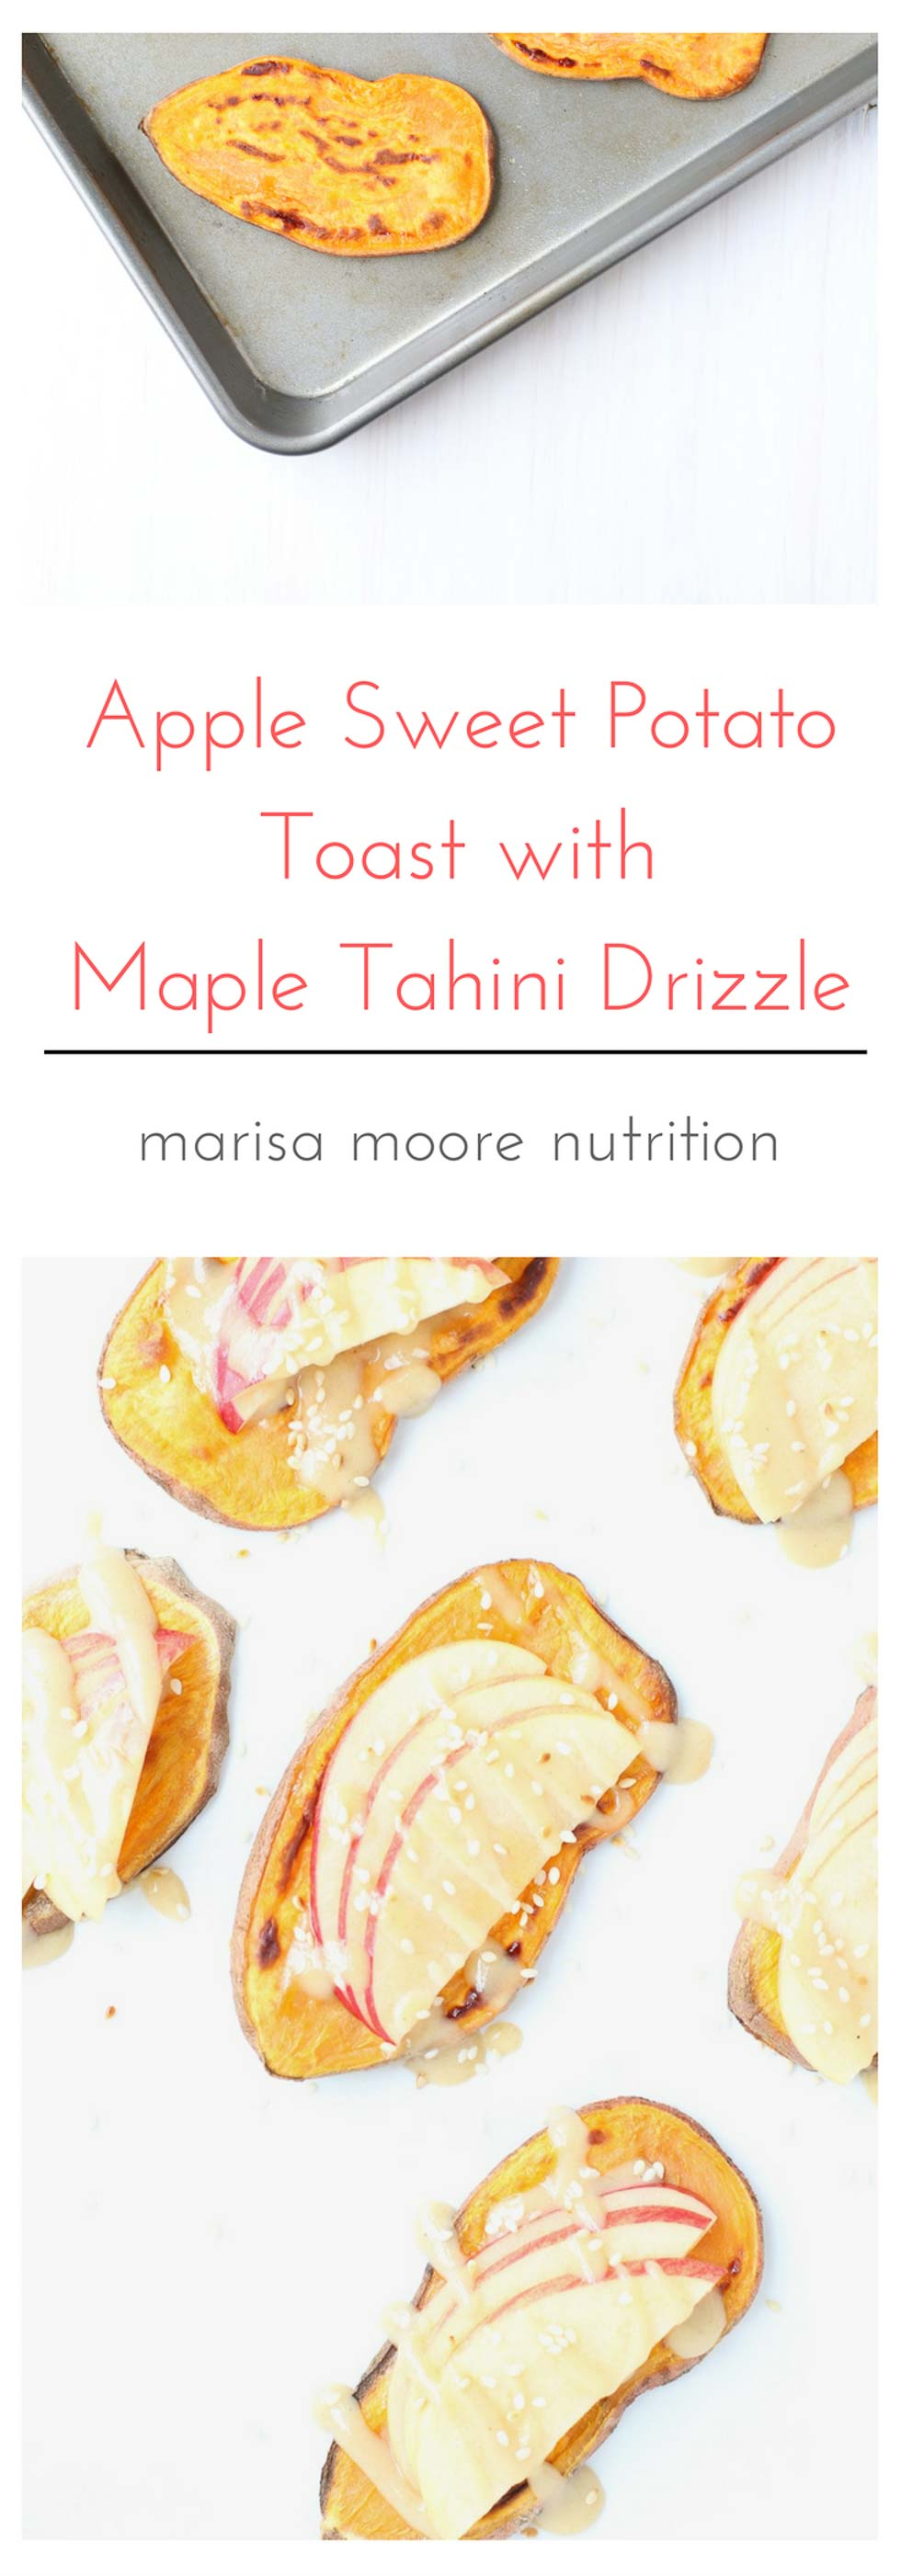 Apple Sweet Potato Toast with Maple Tahini Drizzle